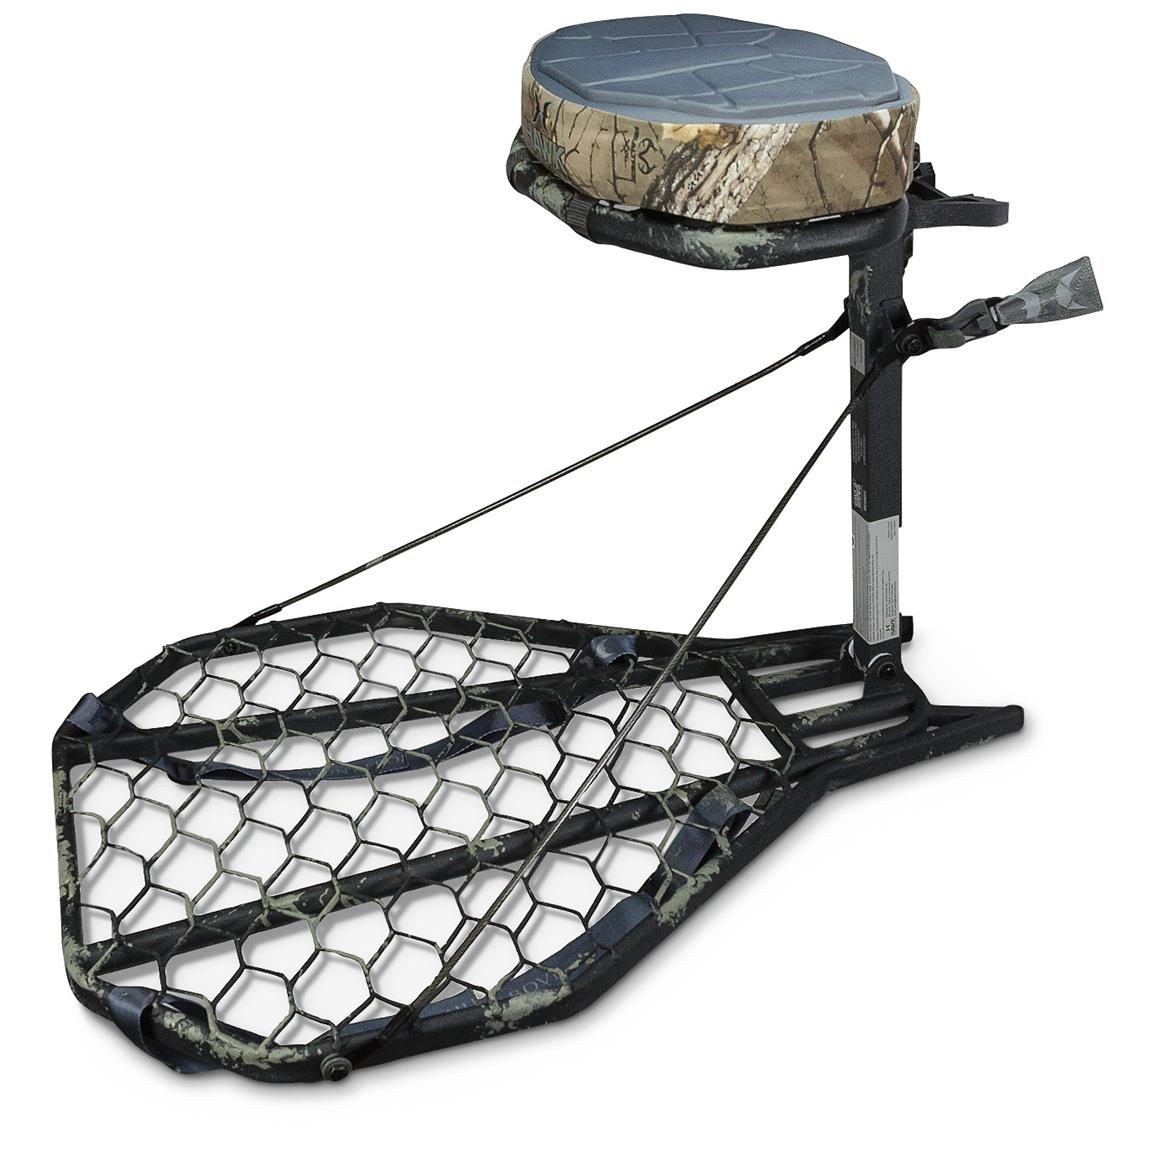 "24"" x 30"" platform with oversized grip-mesh is welded at all contact points for supreme strength and stability"